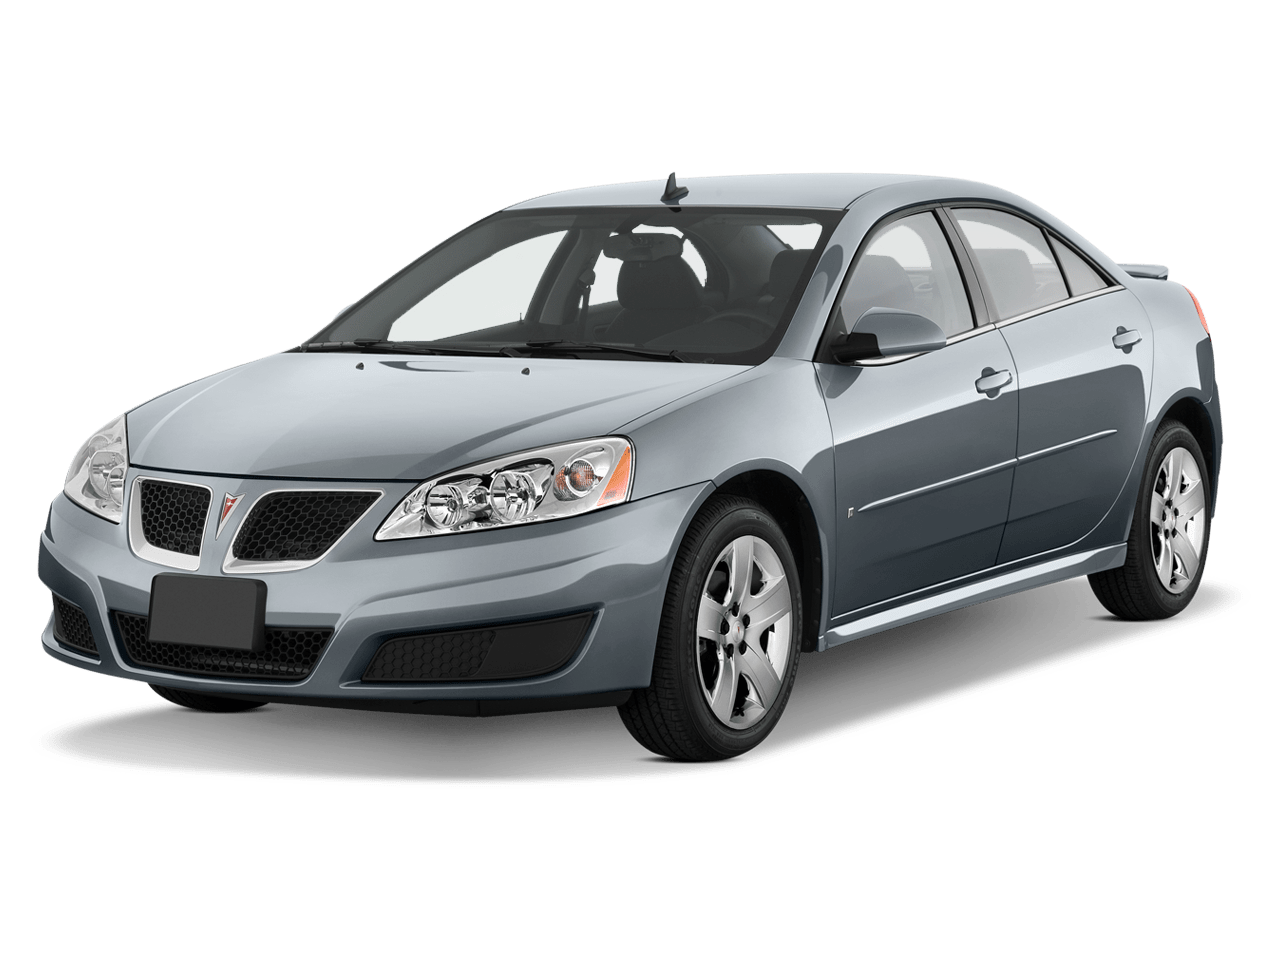 hight resolution of 2009 pontiac g6 reviews and rating motortrend pontiac g6 convertible power window wire diagrams